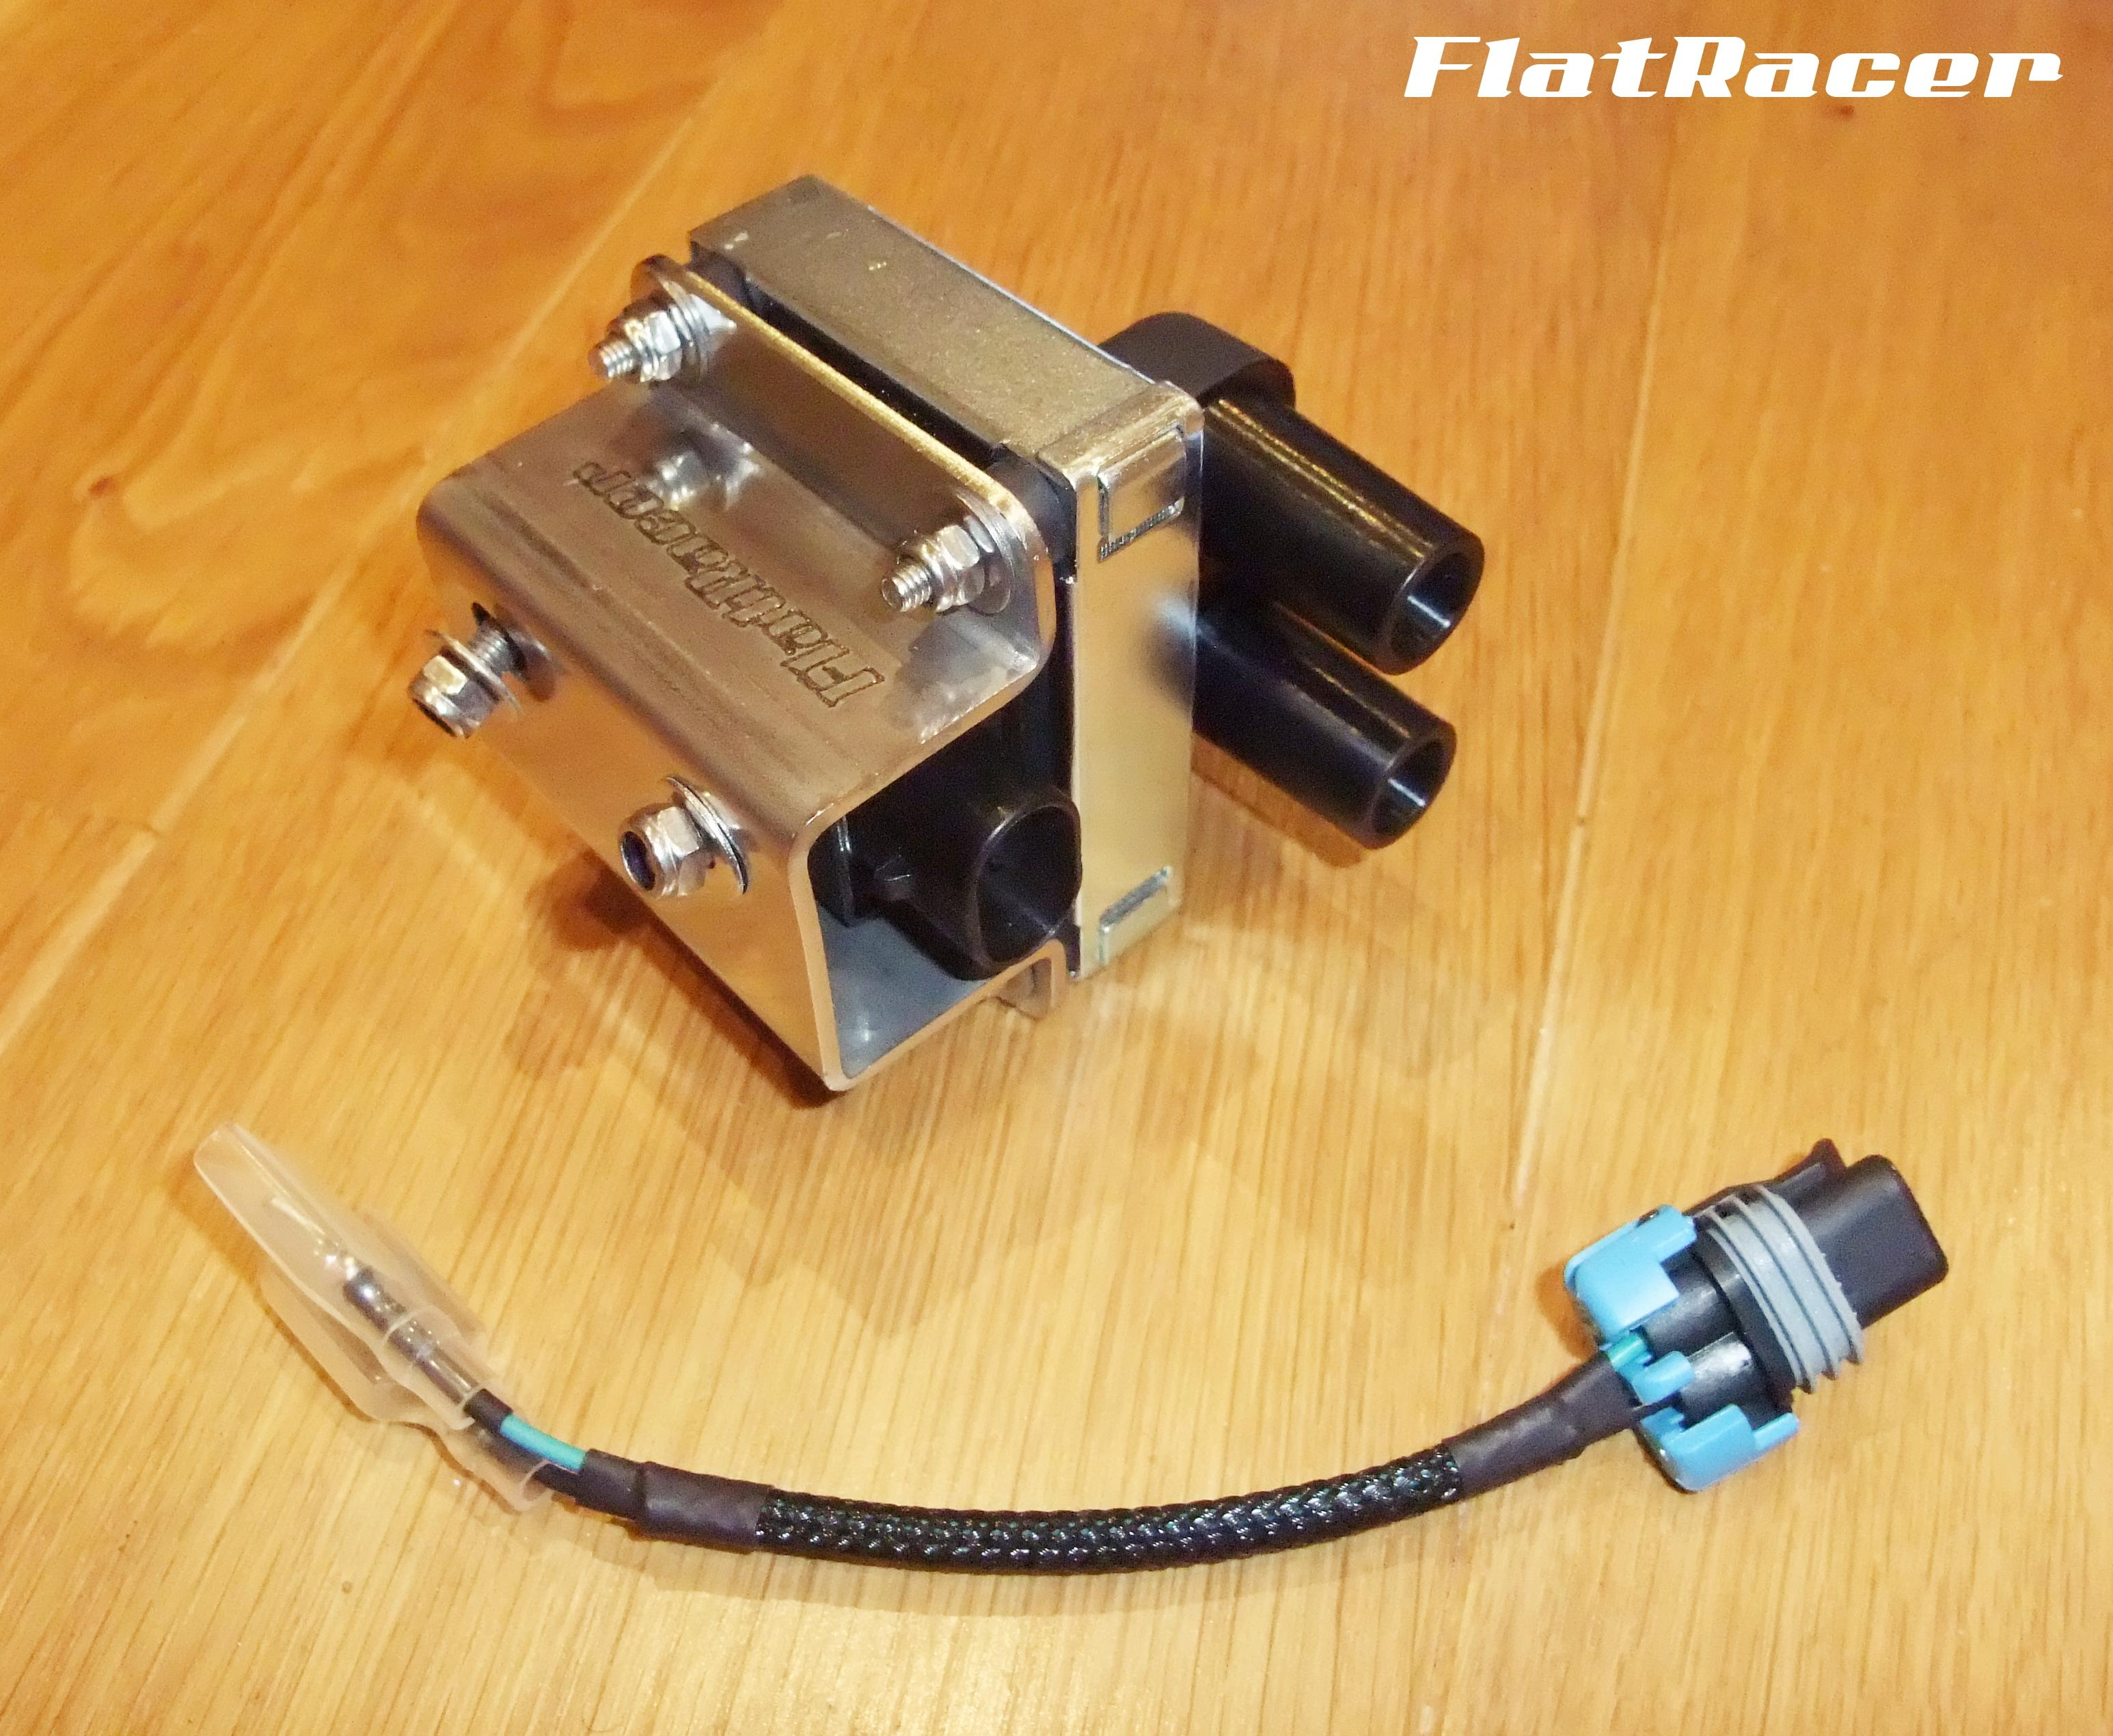 FlatRacer BMW R2v Airhead Boxer R45/65 (81-84) and Monolever Series including the R65, R80 and R100 models (85-96) replacement ignition coil kit